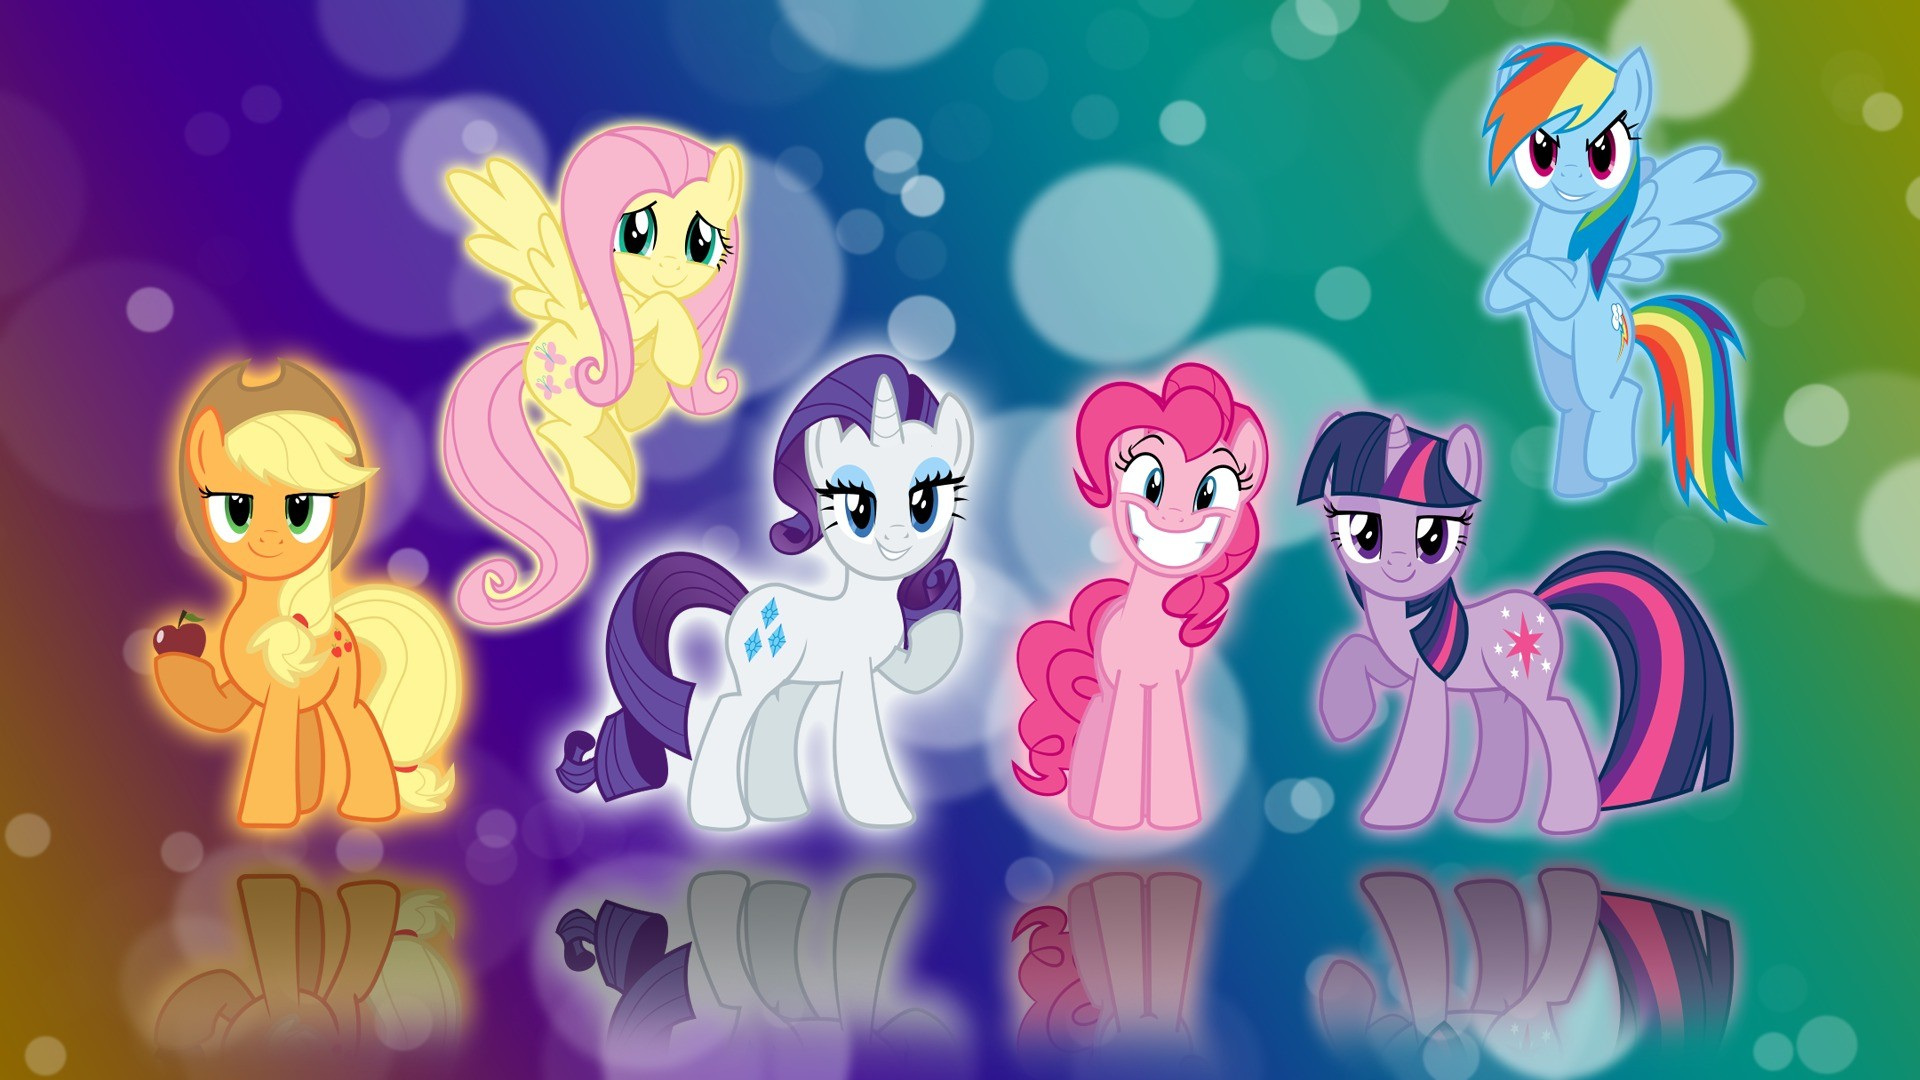 Mlp Christmas.My Little Pony Christmas Wallpaper 74 Images